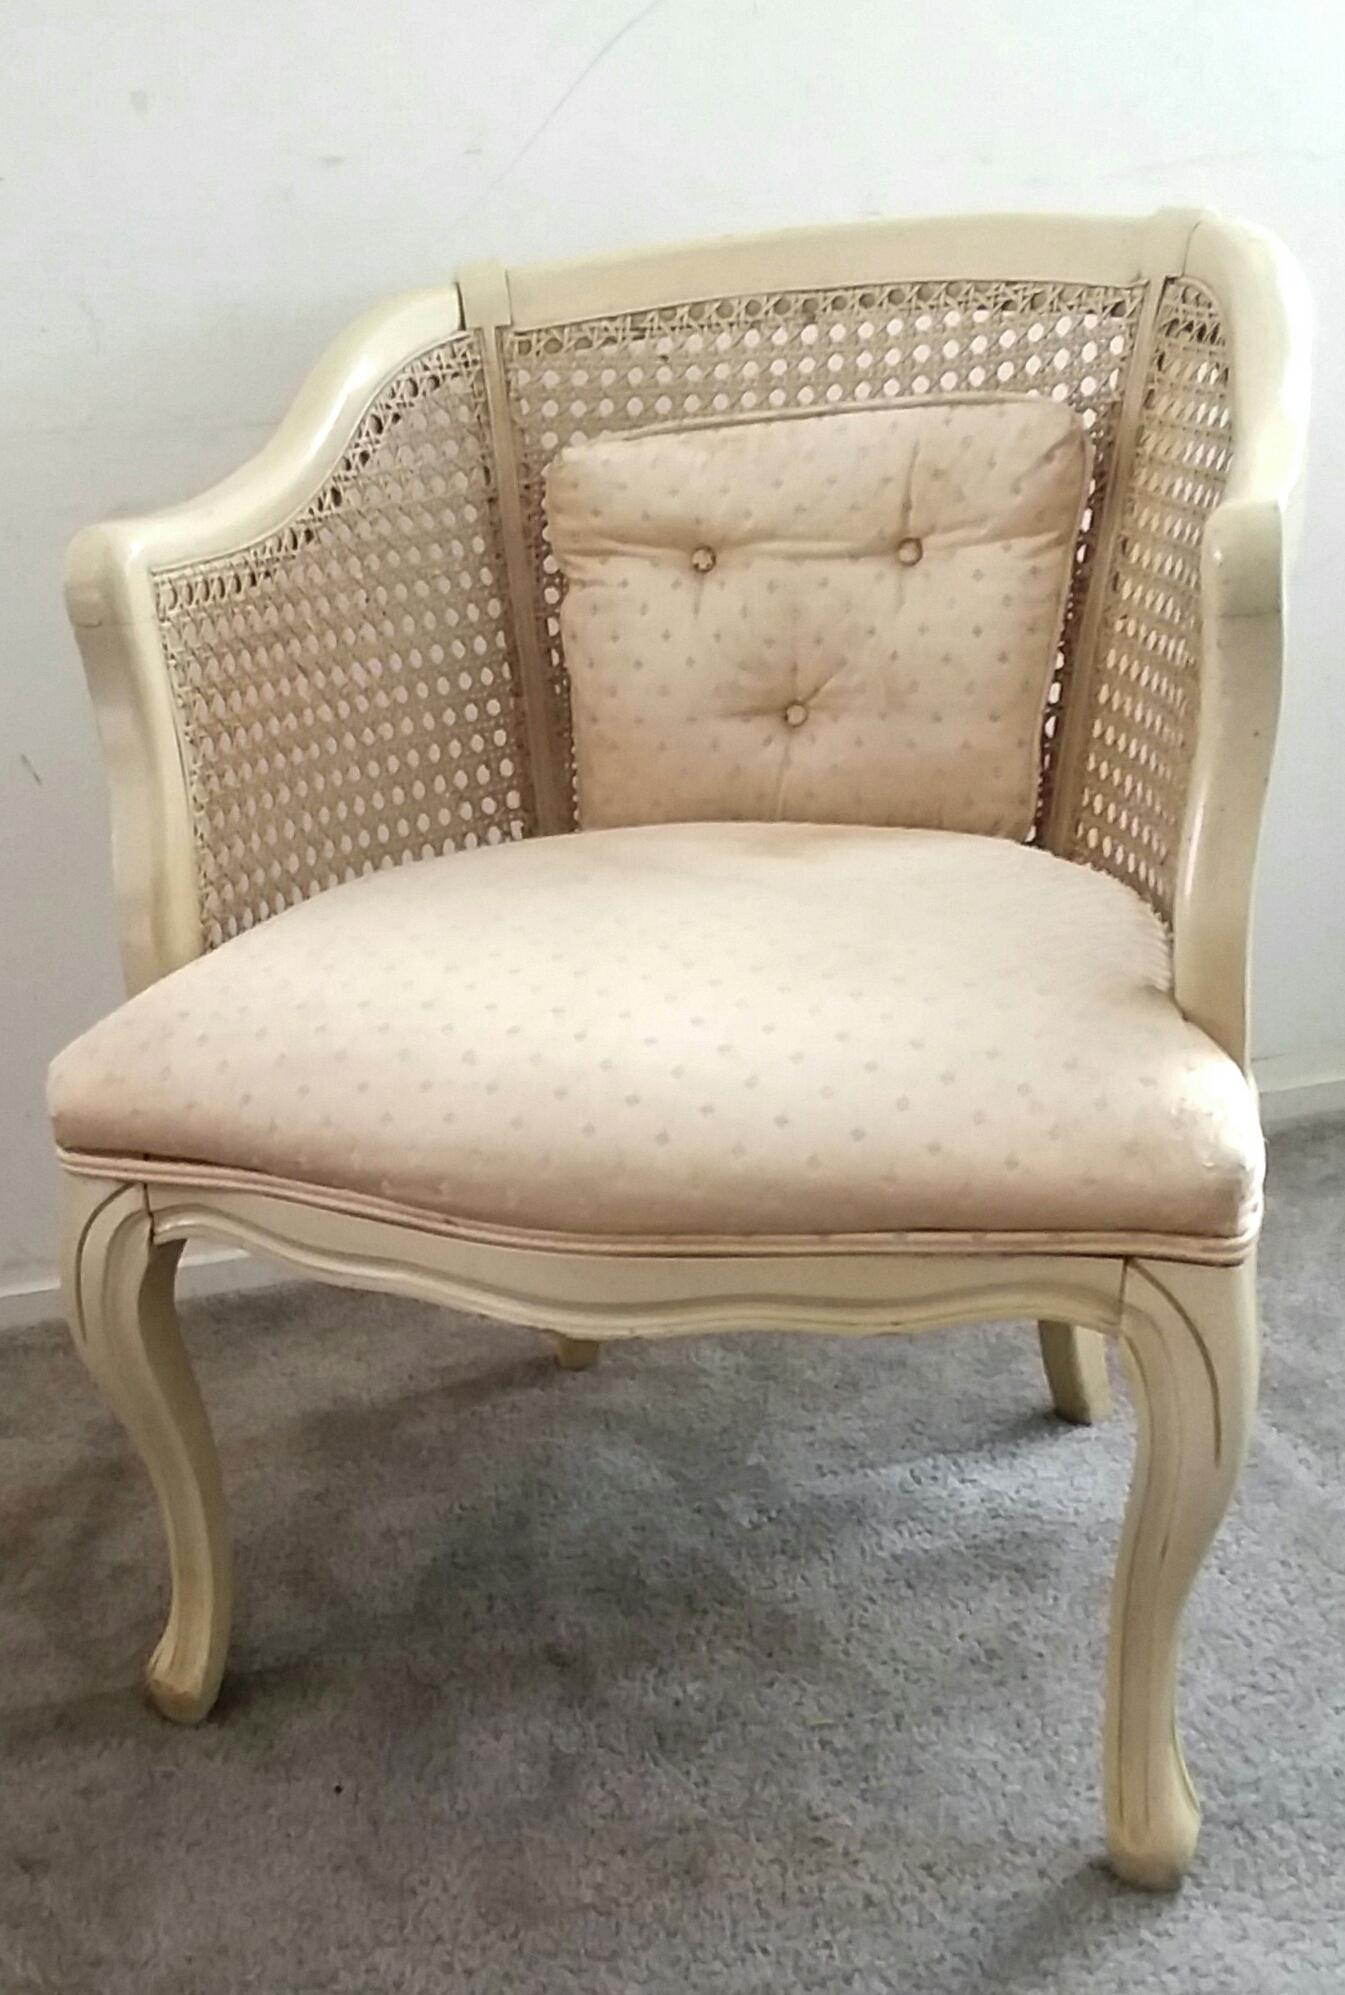 French Provincial 20th Century French Provincial Caned Barrel Chair For  Sale   Image 3 Of 9